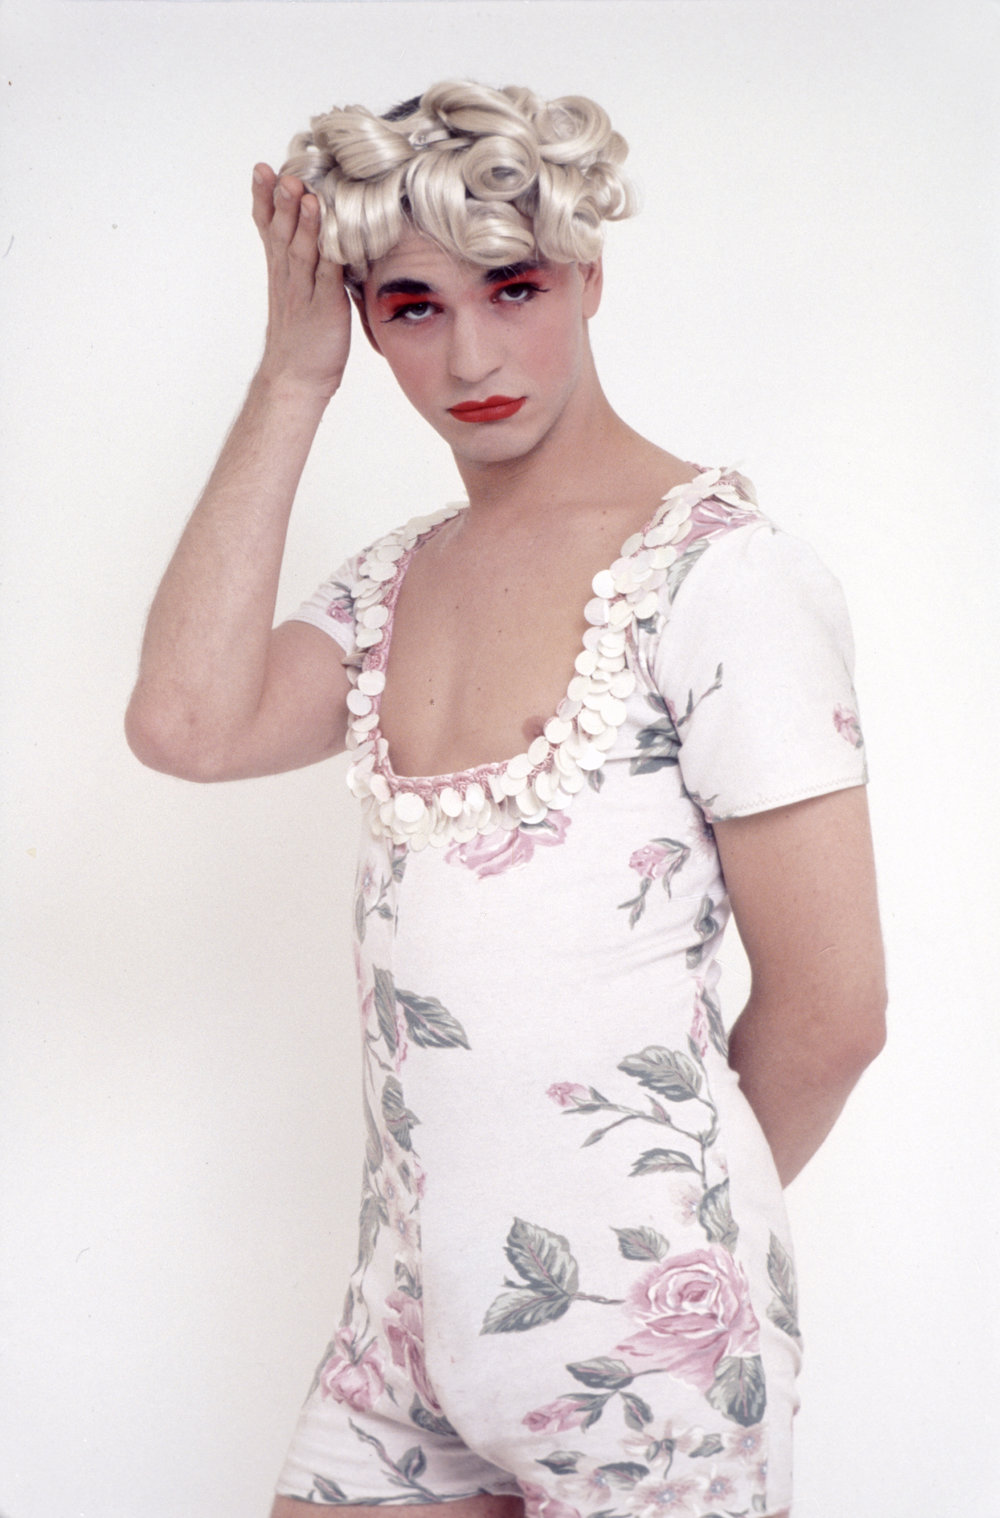 Micahel Alig, 1991.  Photograph by Michael Fazakerley.